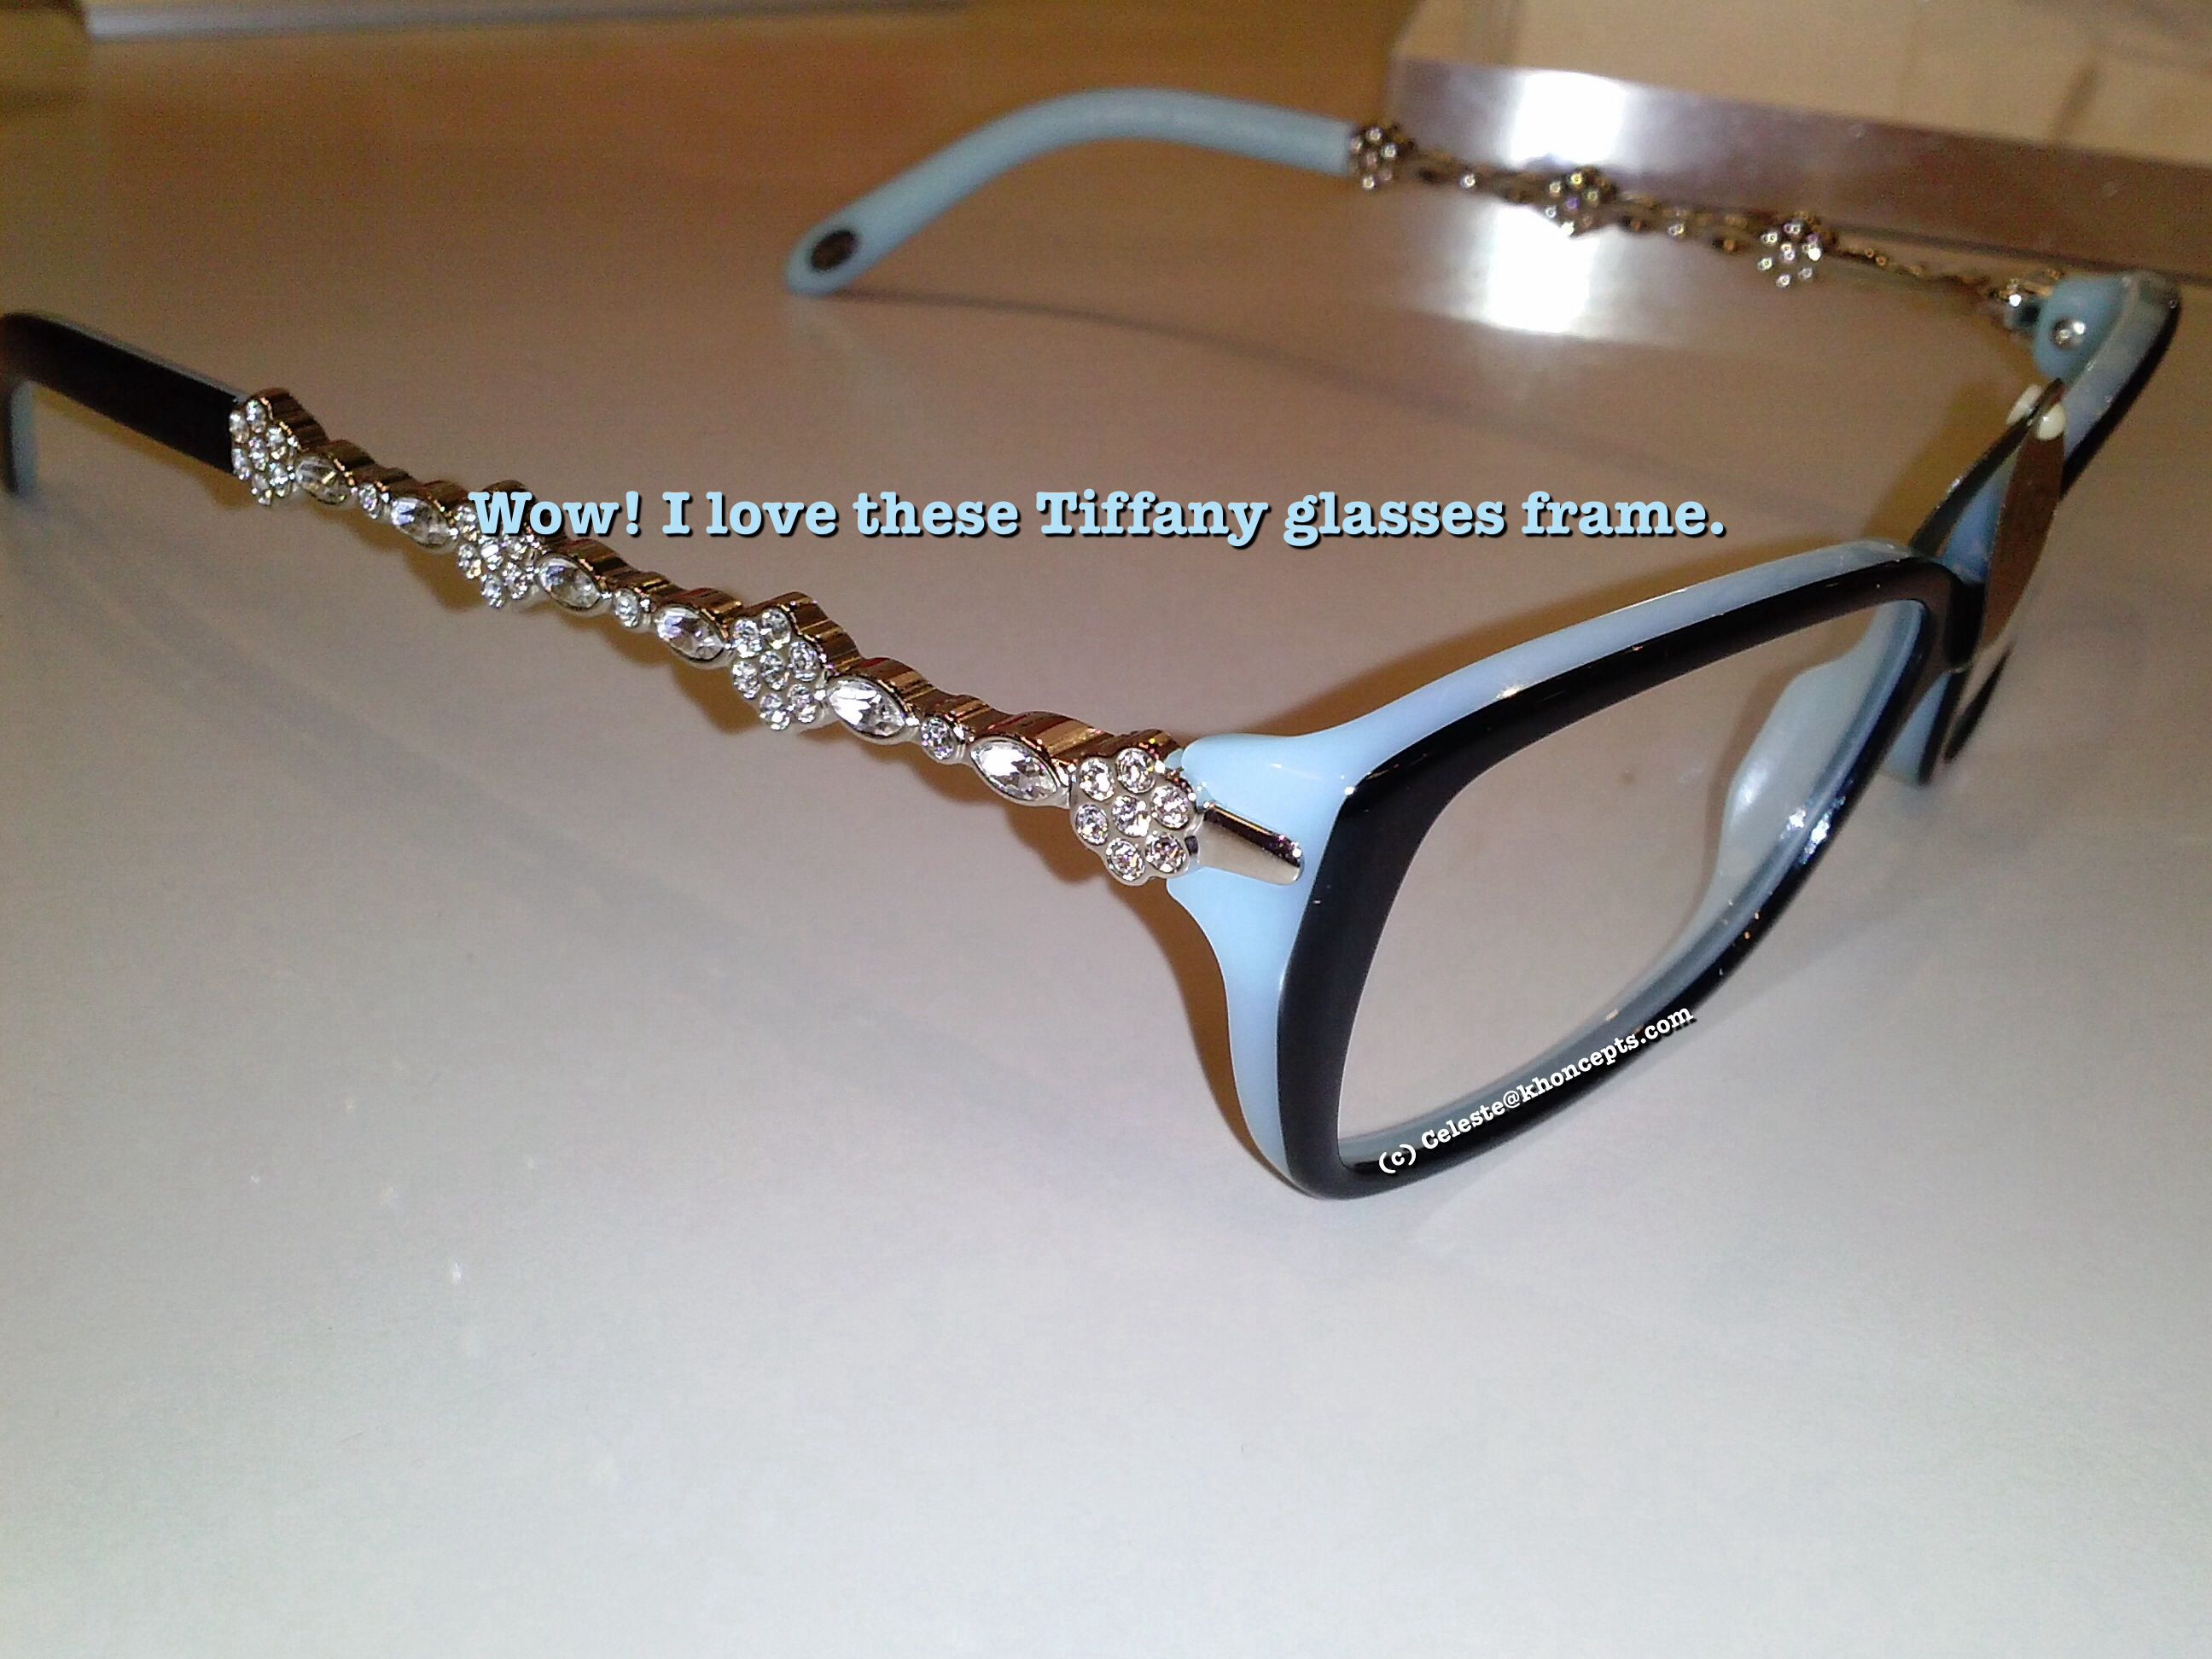 581ce8baae6d Love these bling  Tiffany glasses frames spotted at my eye doctor s office.  Will visit Tiffany and Co online to see what they have.